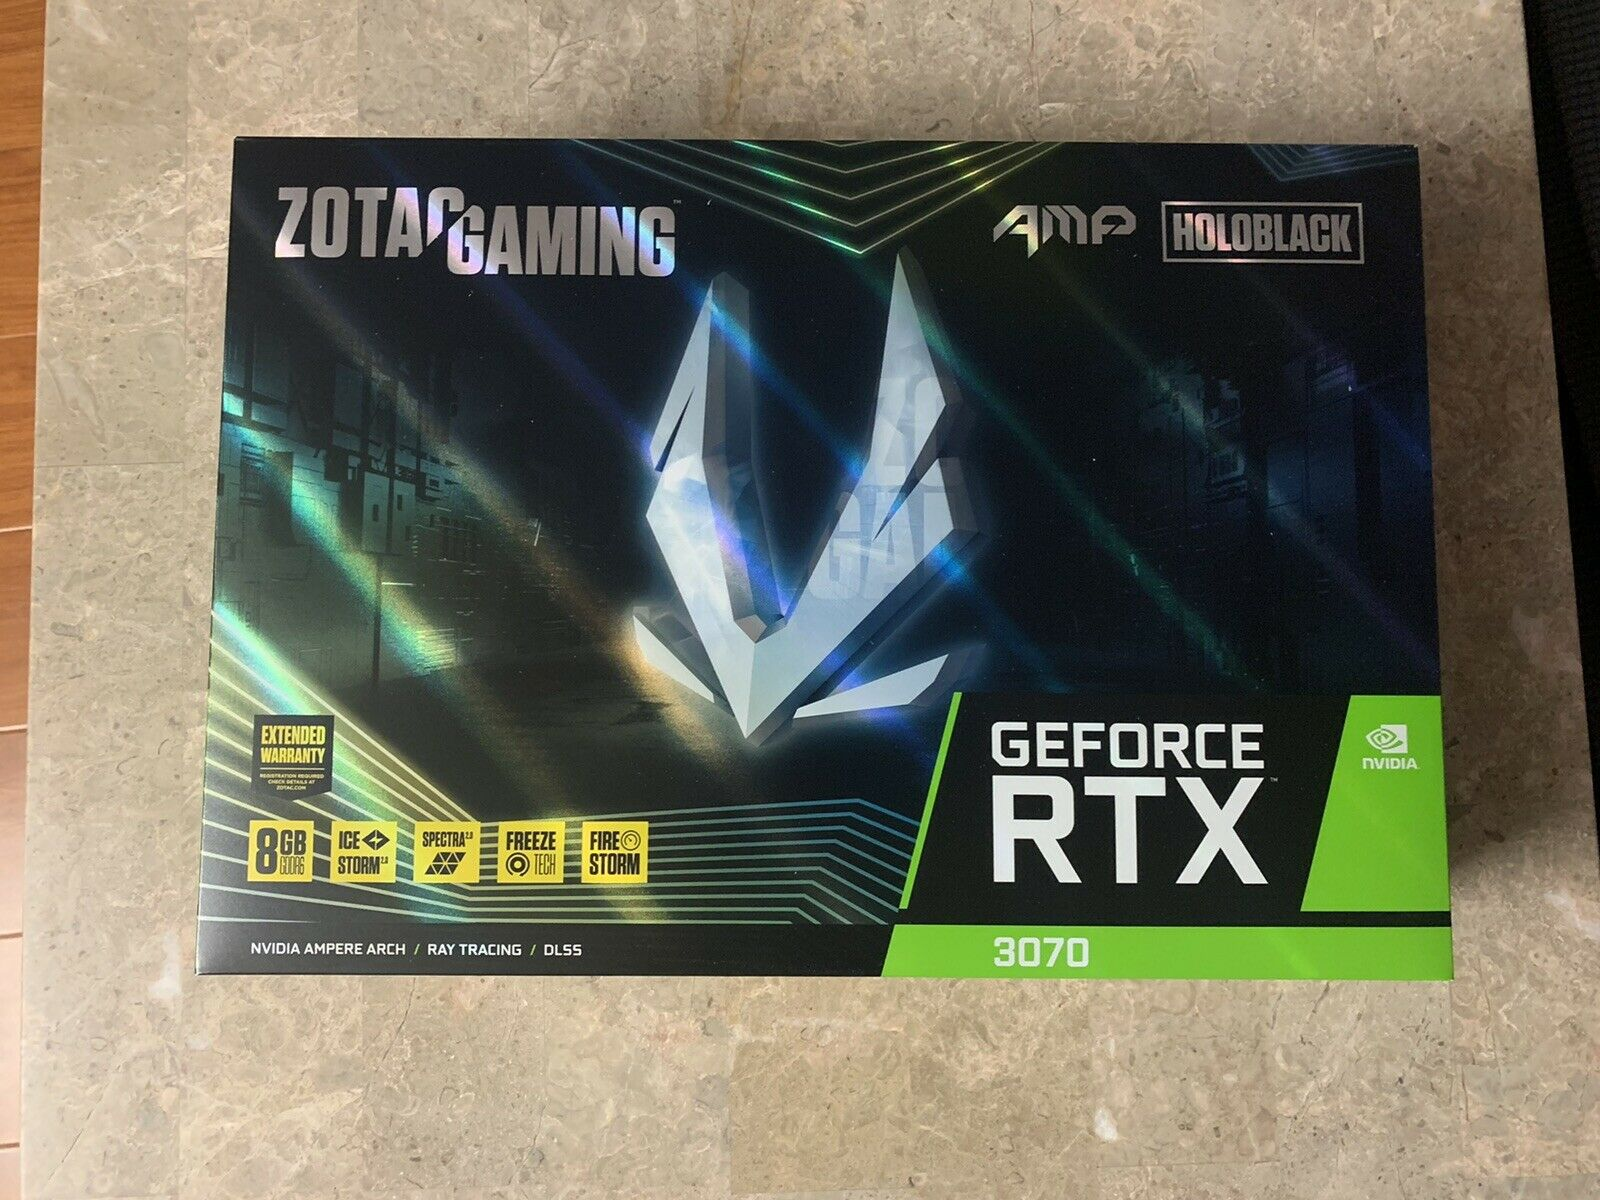 [NEW] ZOTAC GAMING GeForce RTX 3070 AMP HOLO 8GB GDDR6 Graphics Card